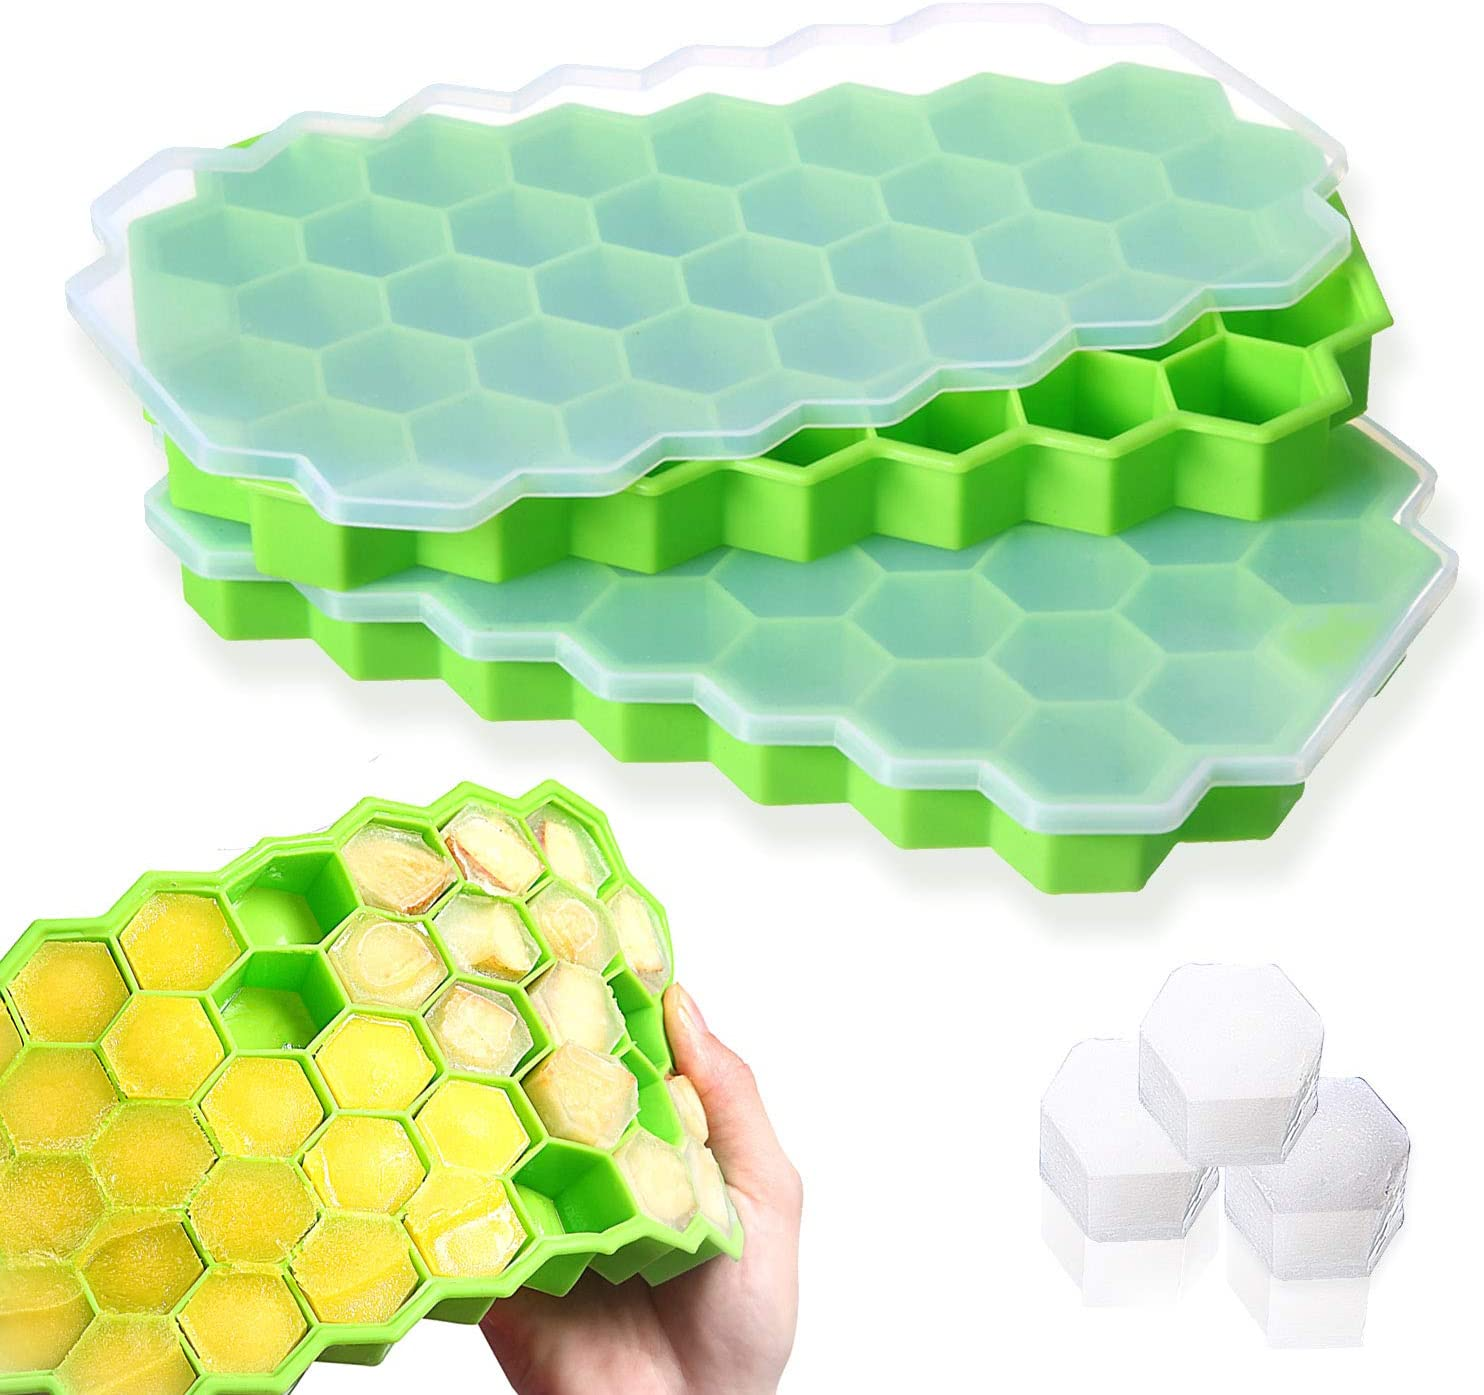 Ice Cube Trays Silicone Molds with Lids Small Ice Cube Molds for Drilled Drinks Whiskeys Cocktails Food Grade BPA free Cubes(2 Pack)